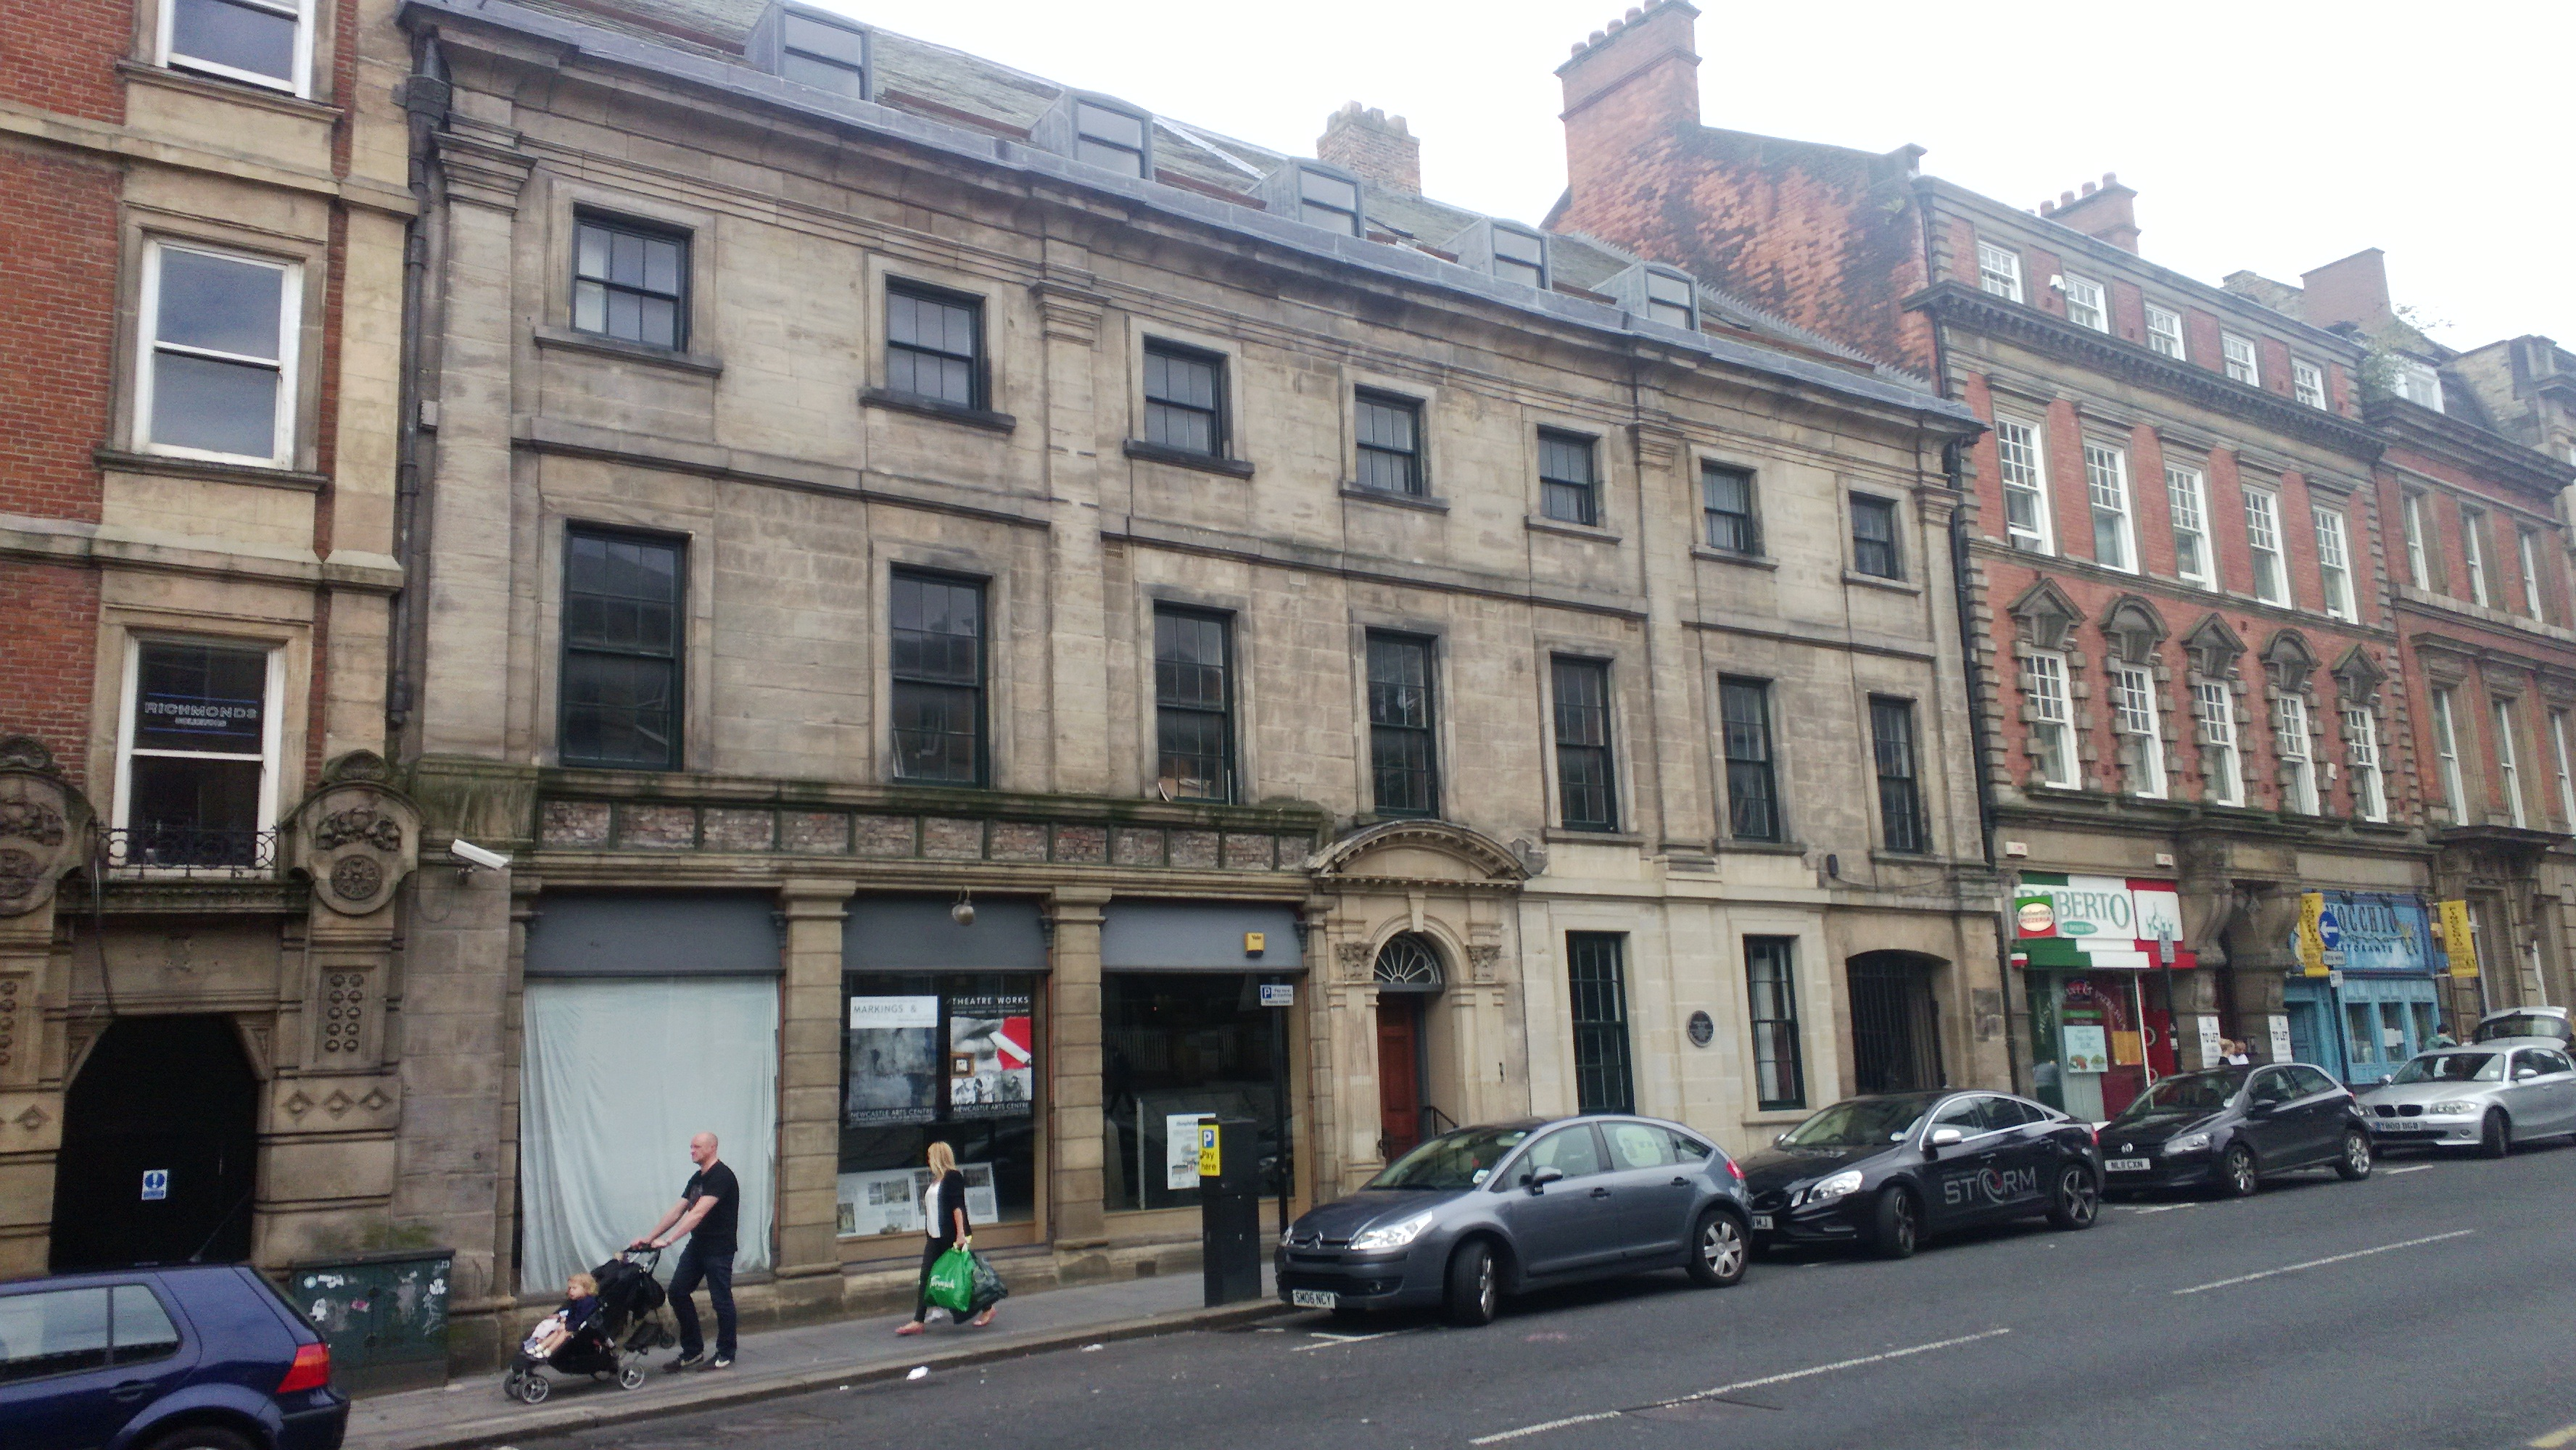 18Th Century House file:18th-century house, westgate road, newcastle-upon-tyne